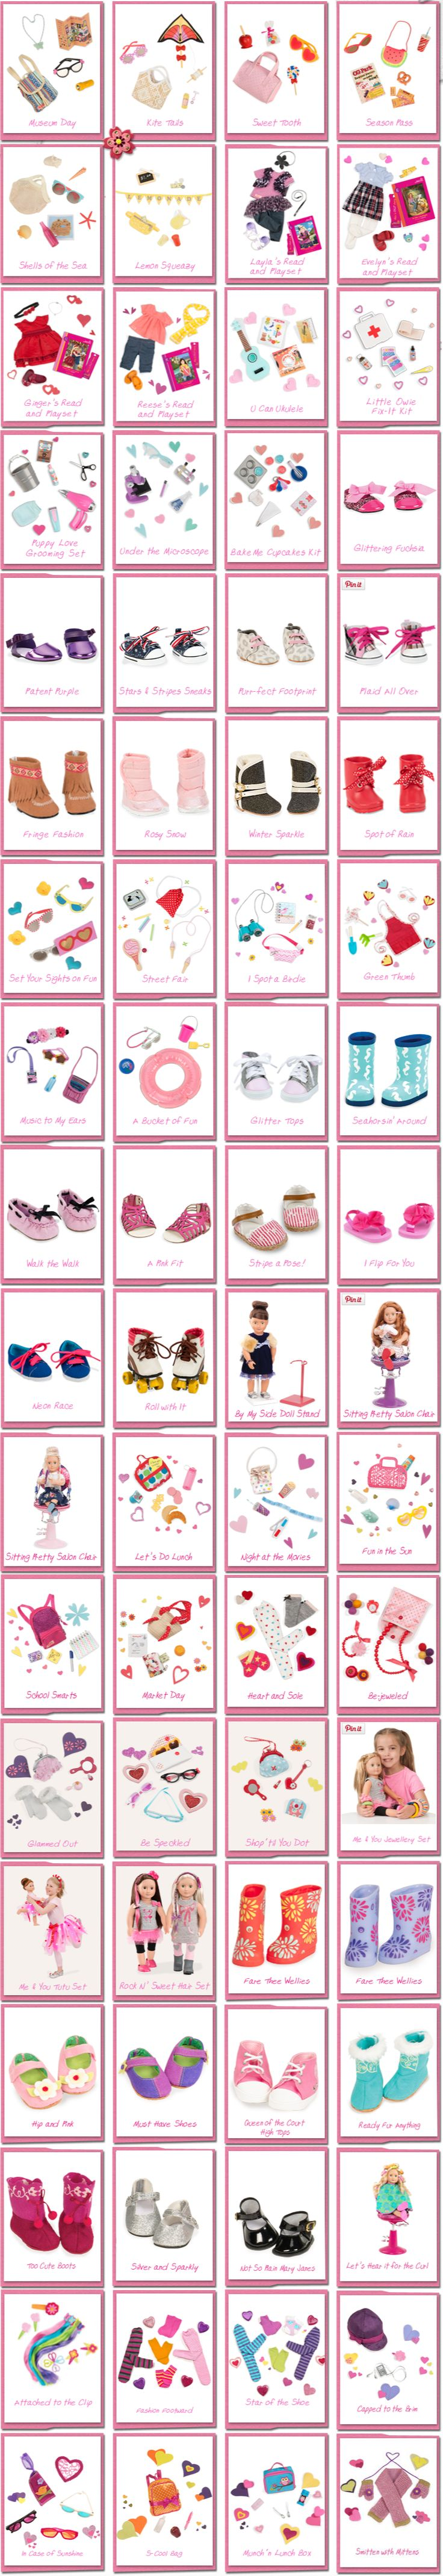 Fashion Accessories | Our Generation Dolls